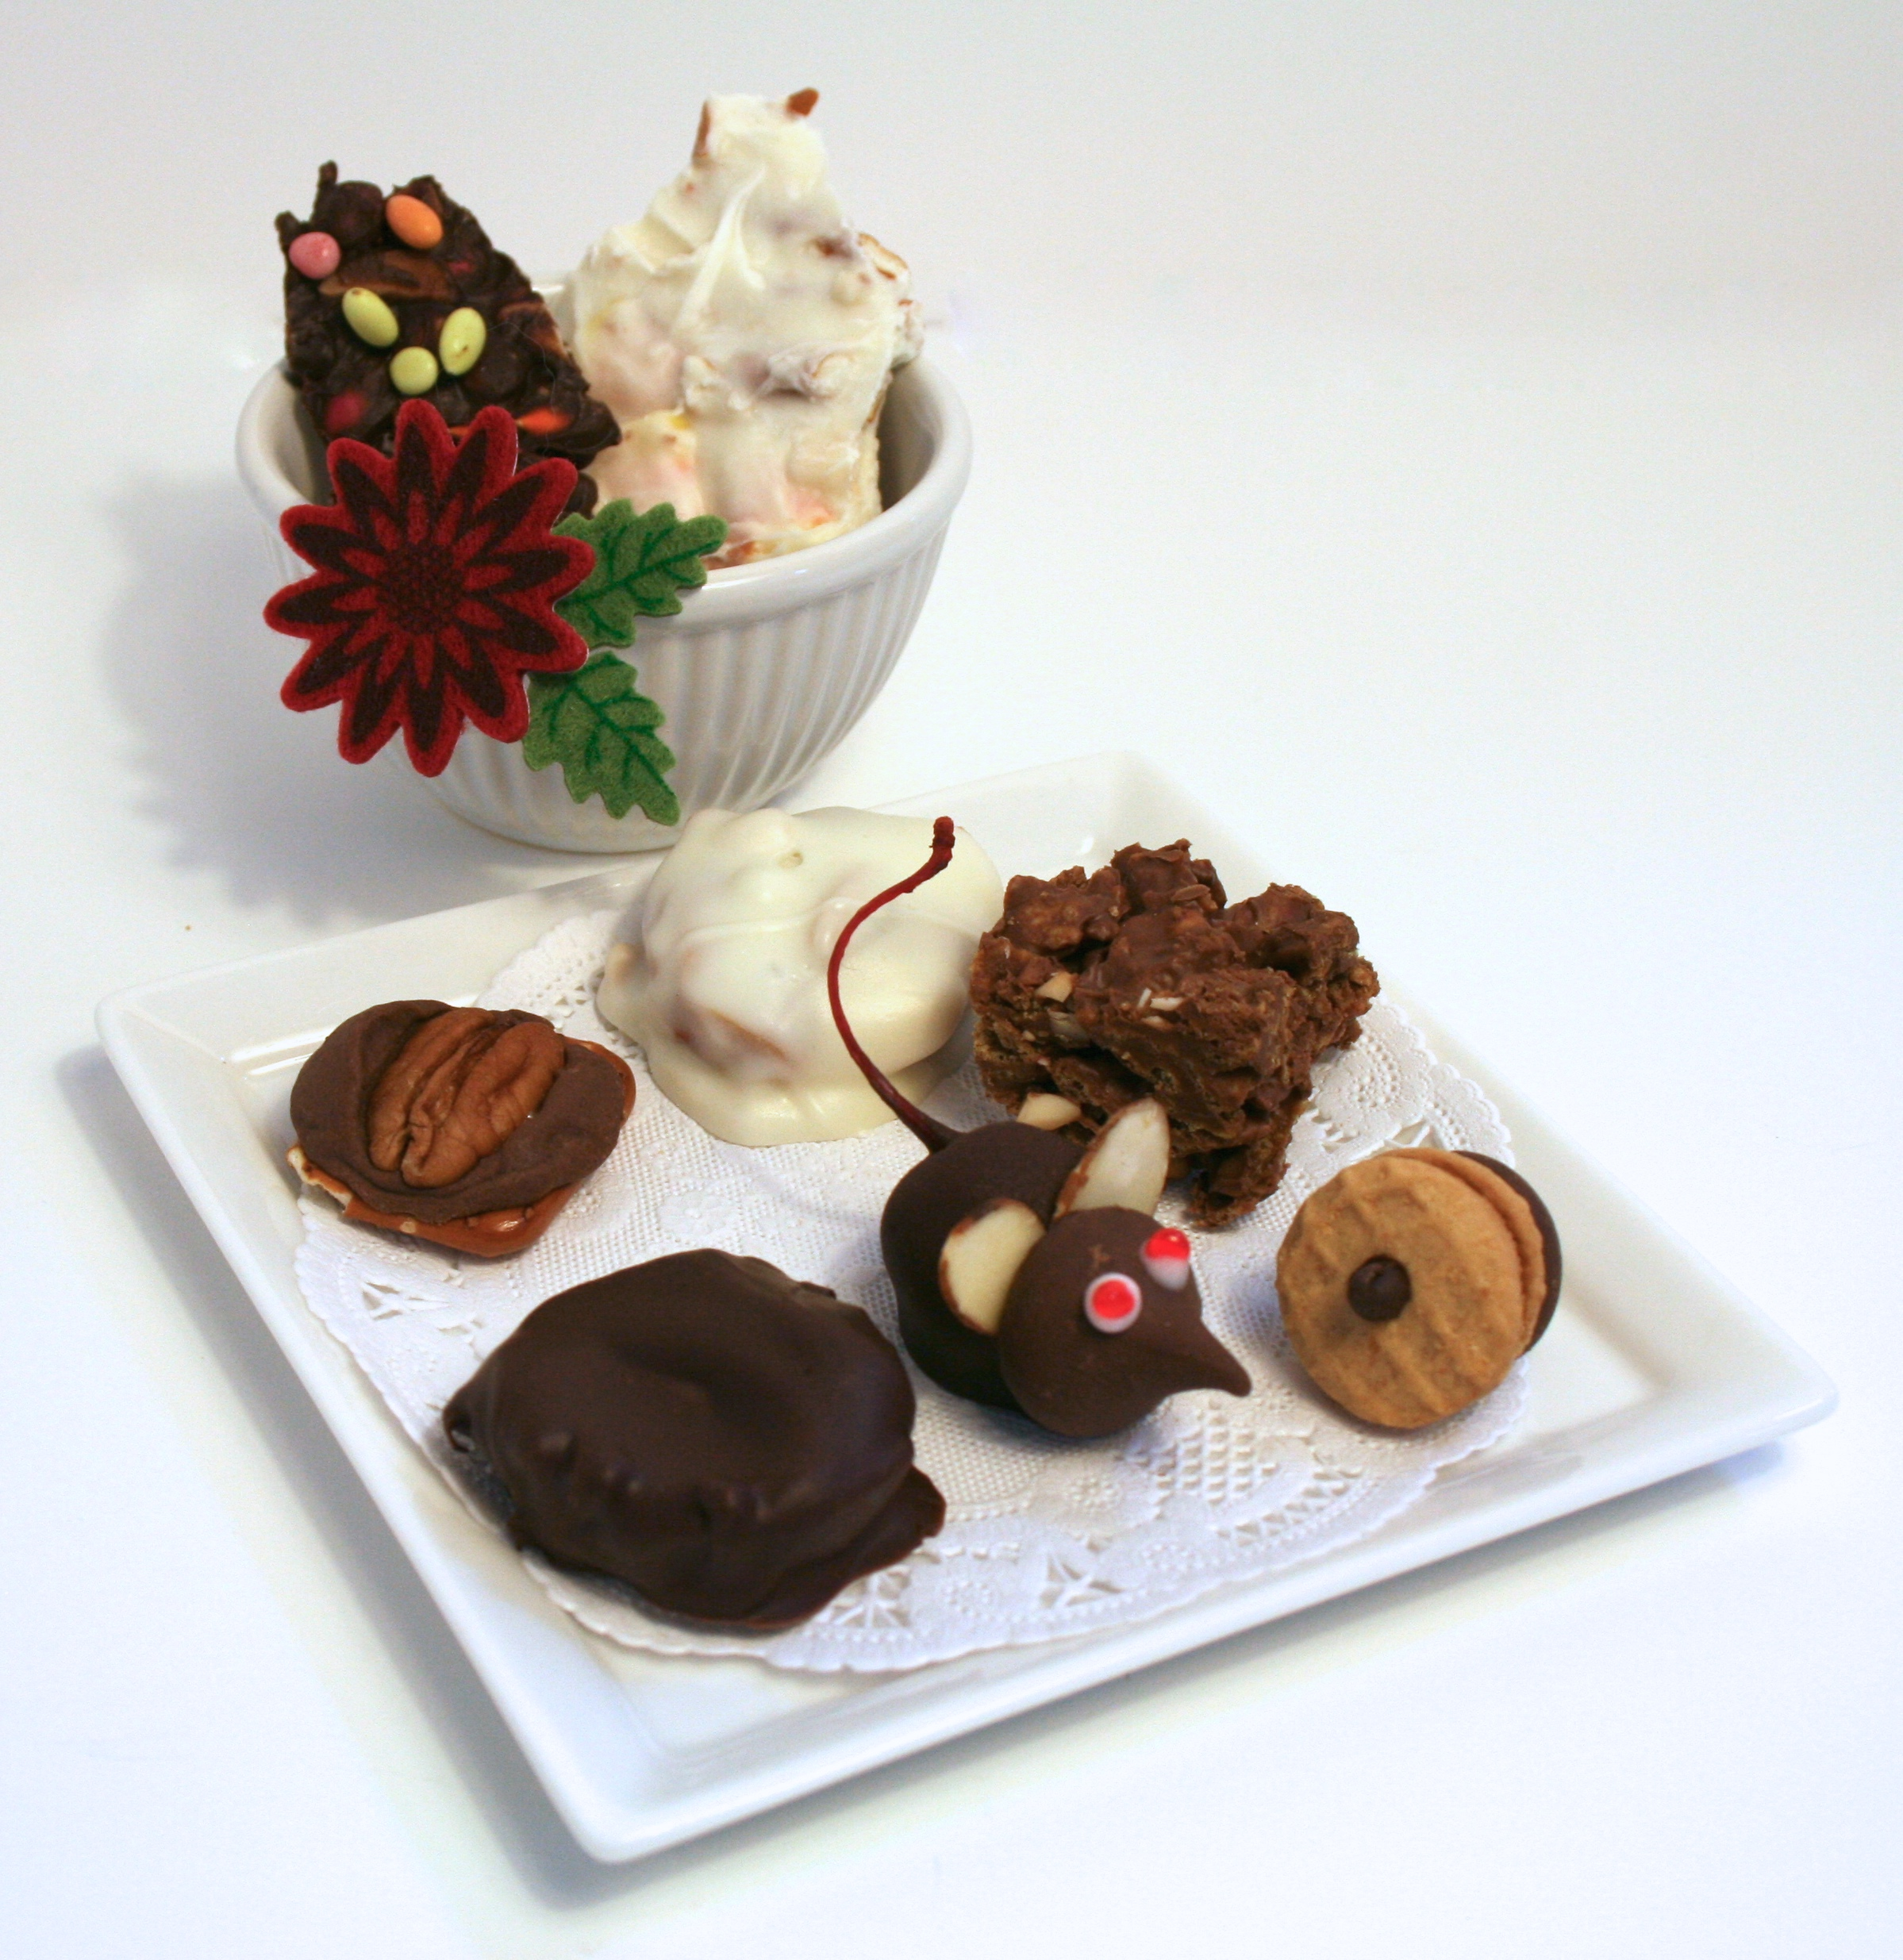 Gift Idea Recipes, findingourwaynow.com